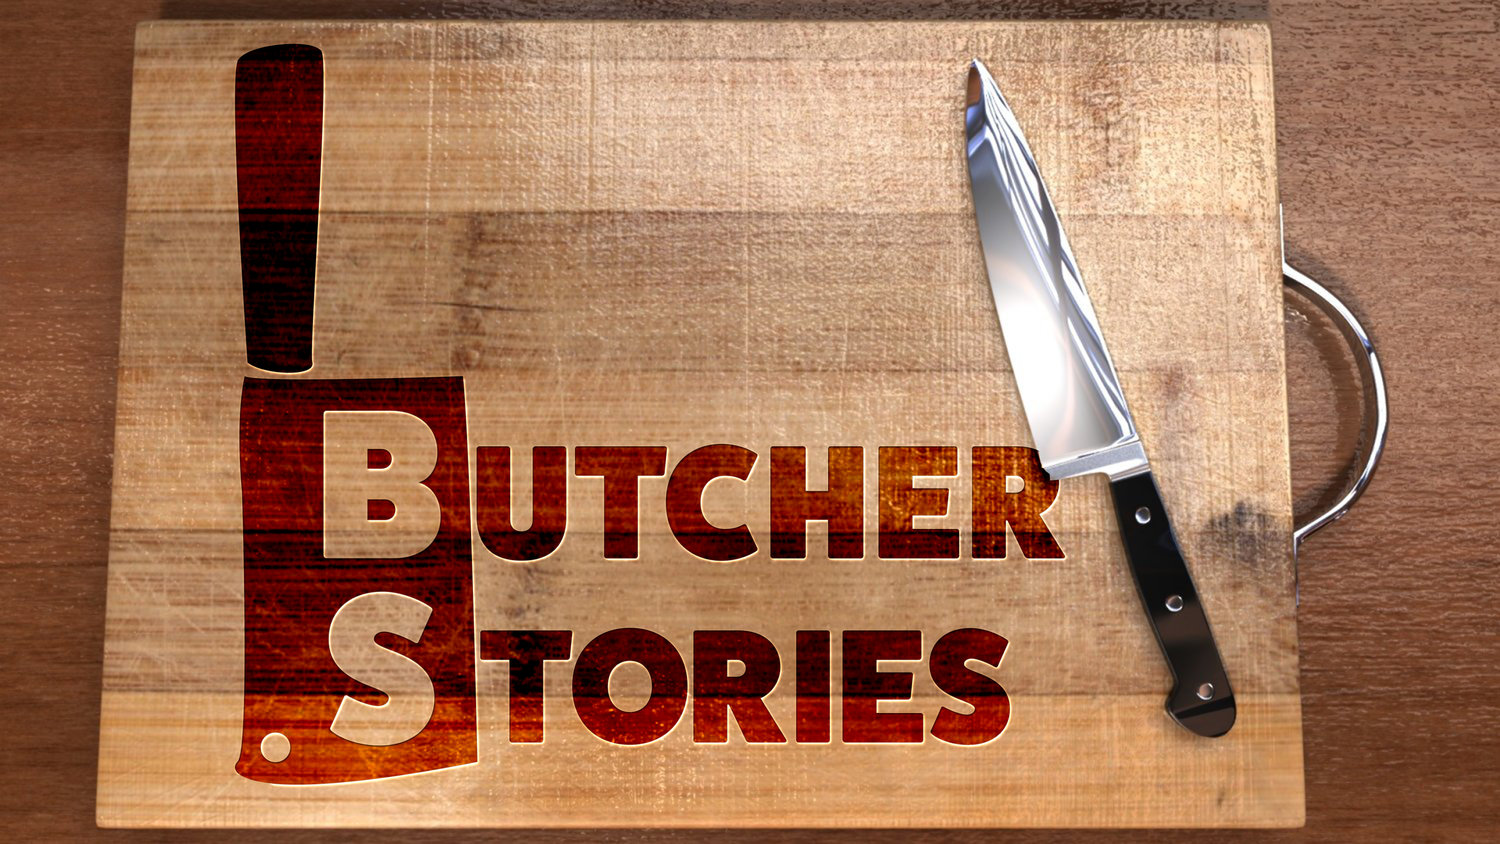 Butcher Stories